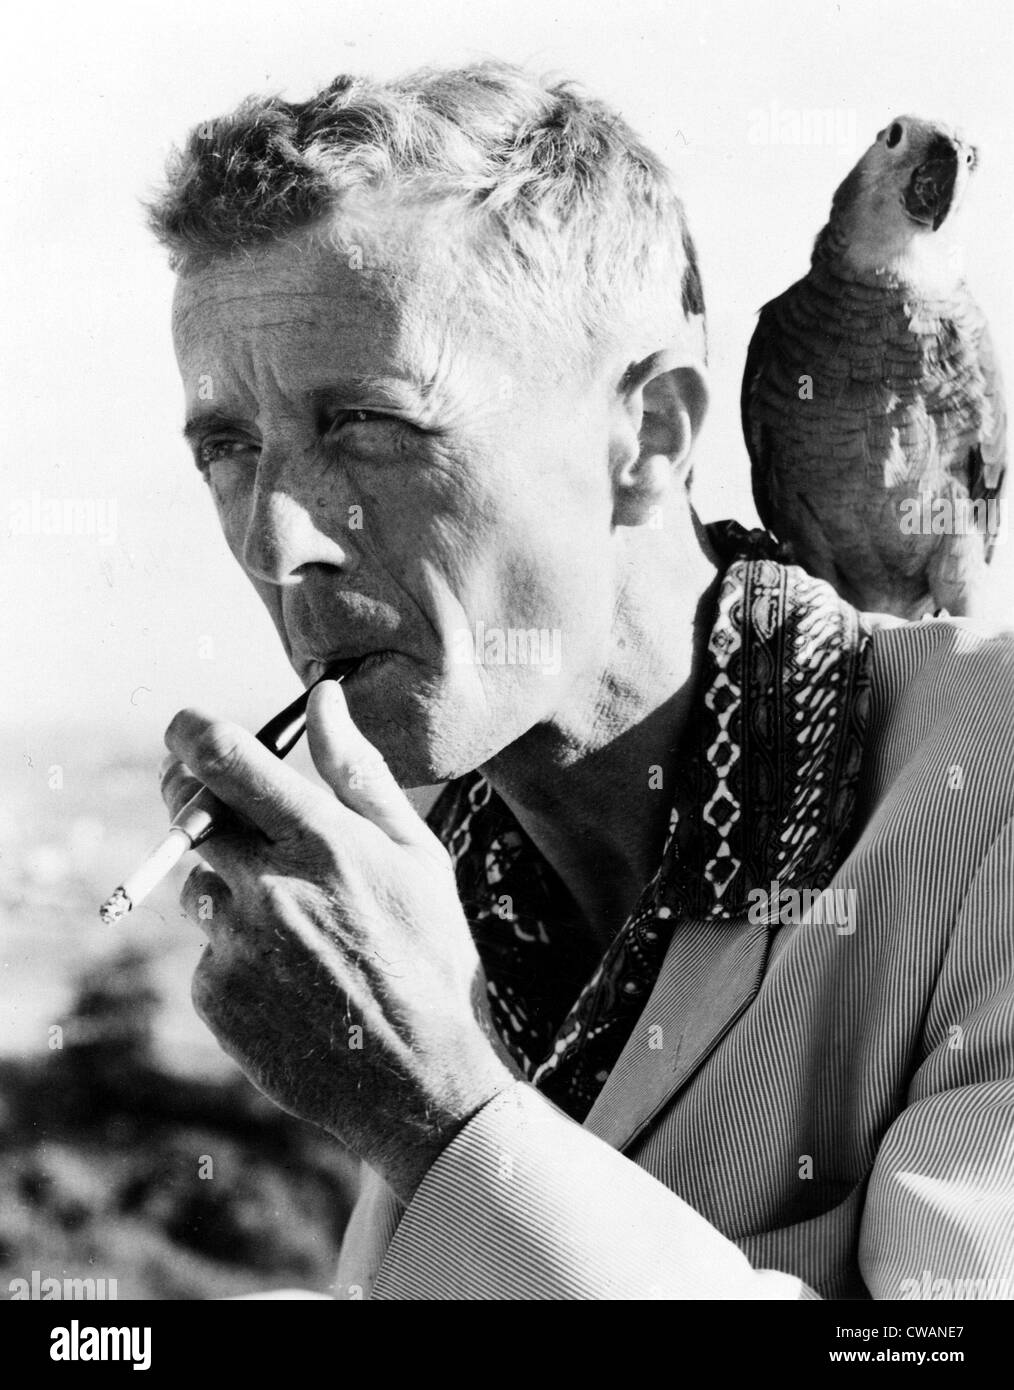 PAUL BOWLES, circa 1960s. Courtesy: CSU Archives / Everett Collection - Stock Image